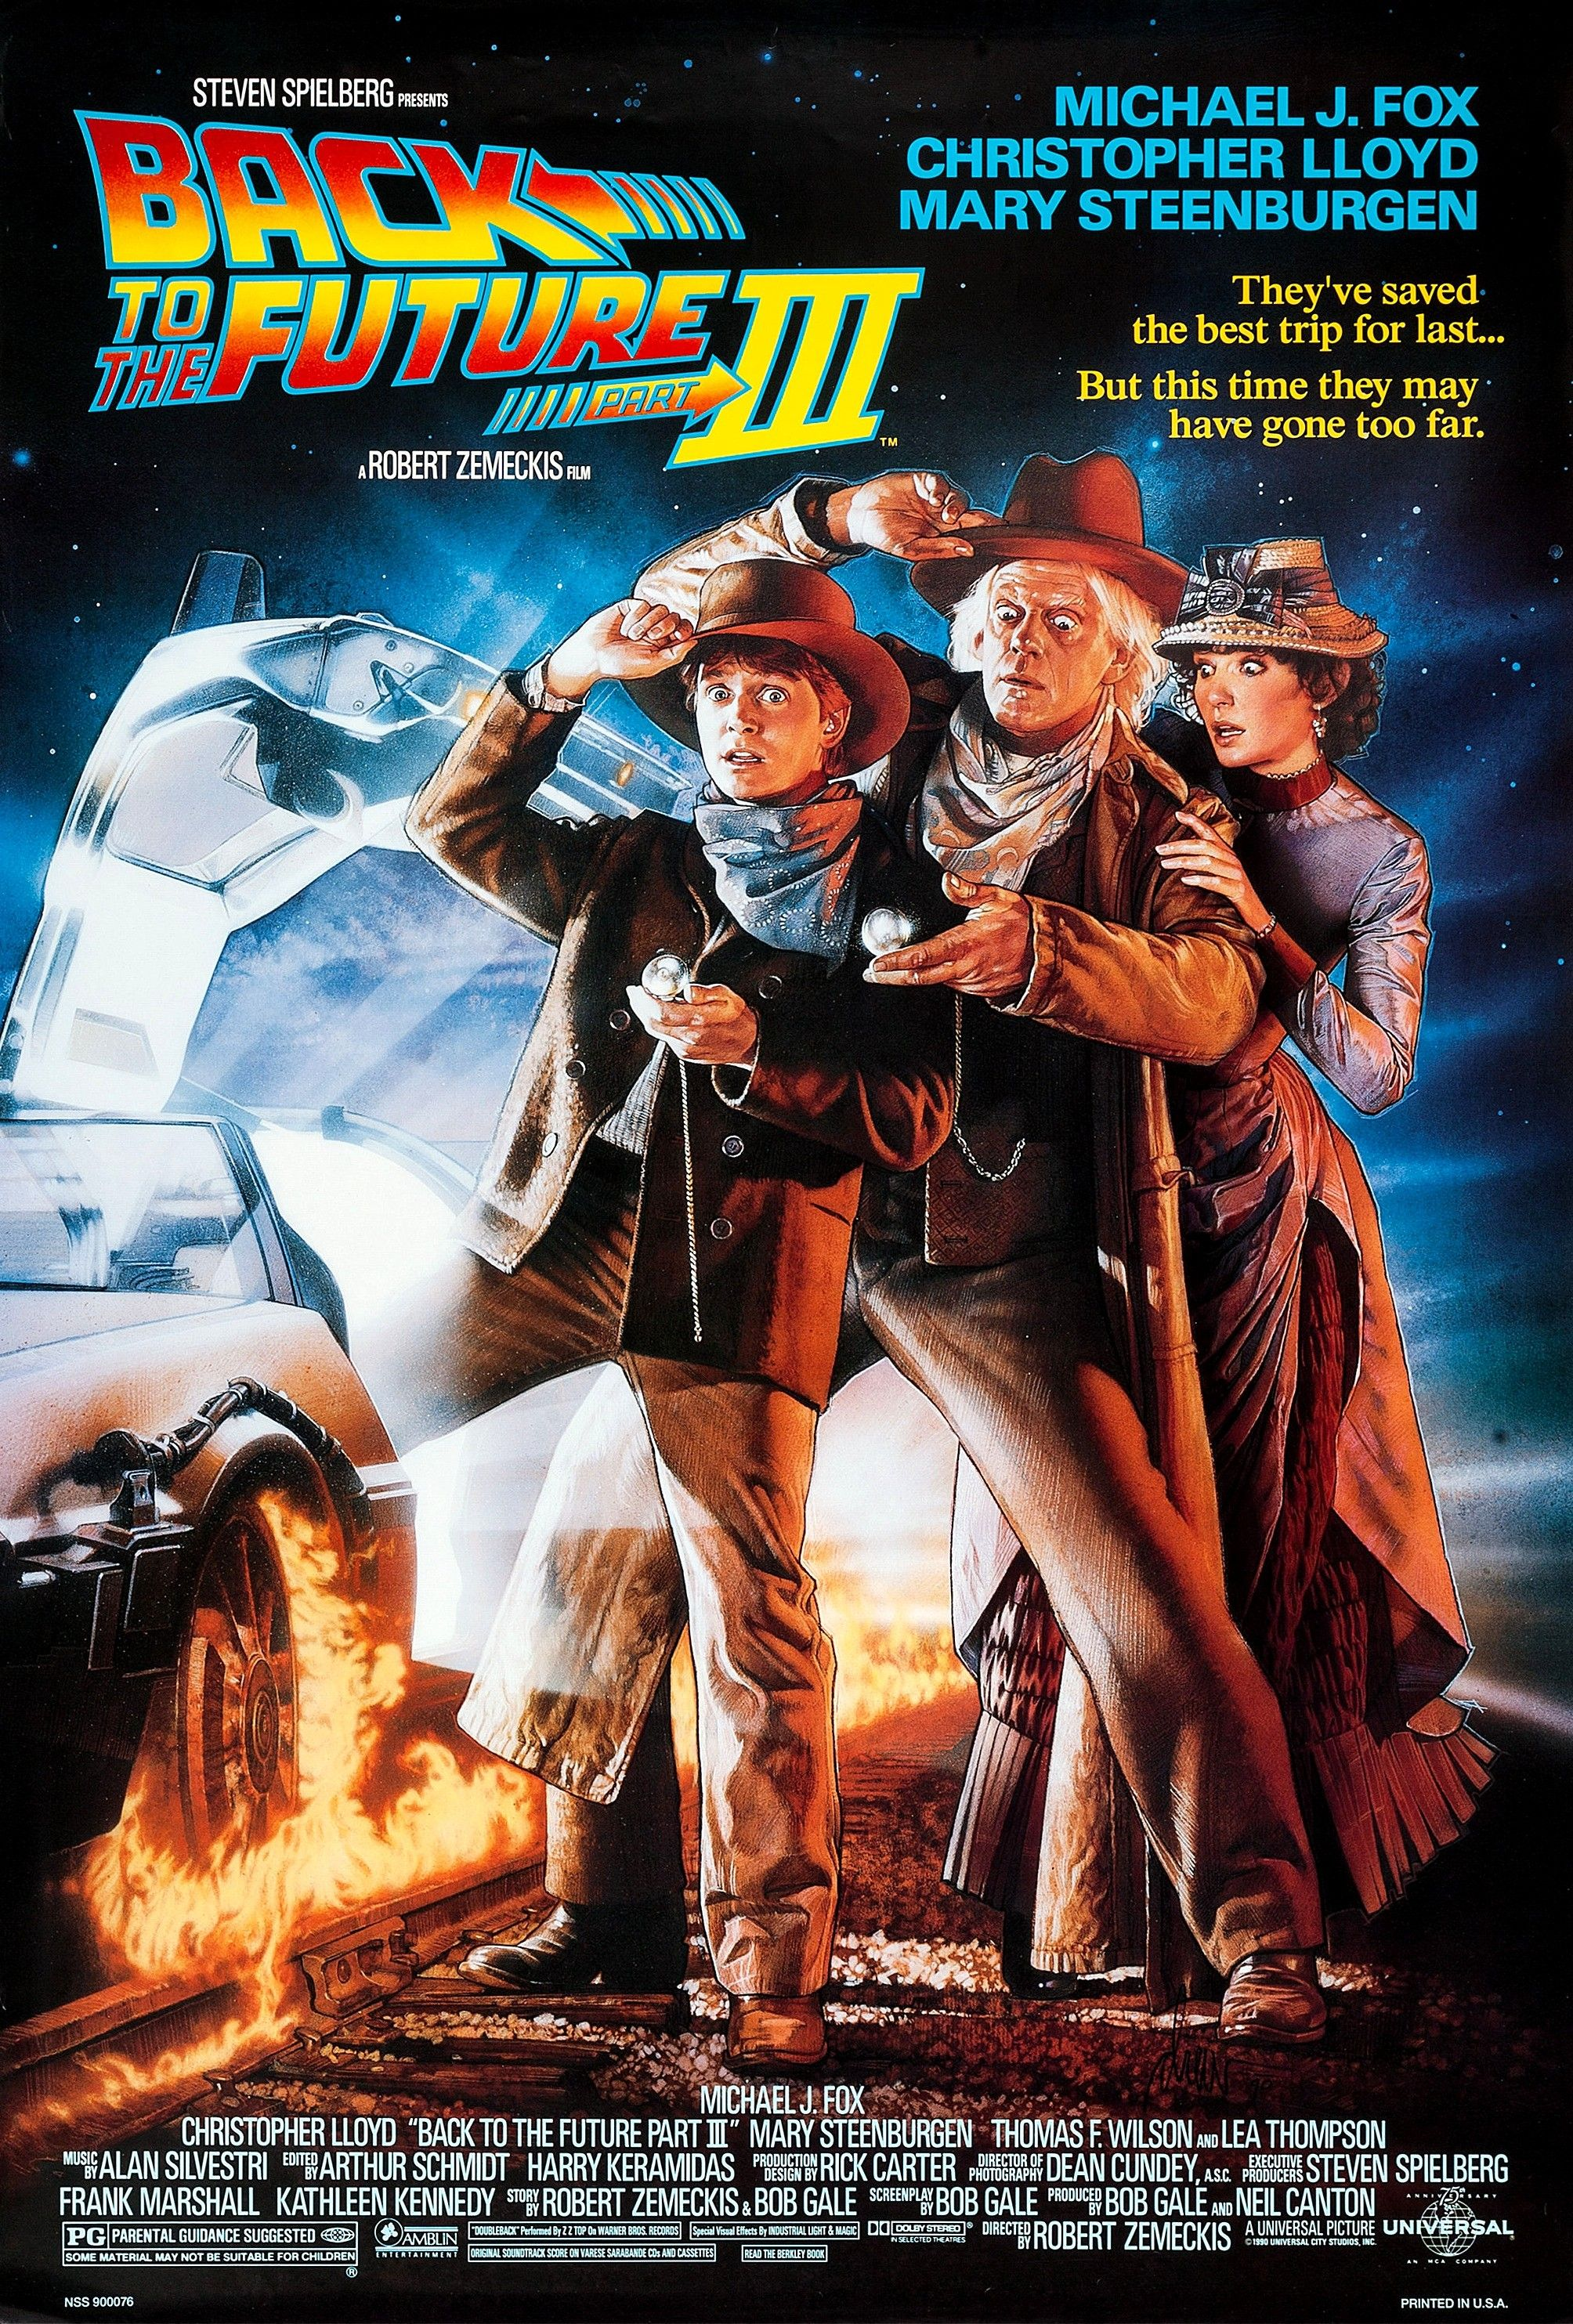 """Back to the Future III"" directed by Robert Zemeckis - 1990"